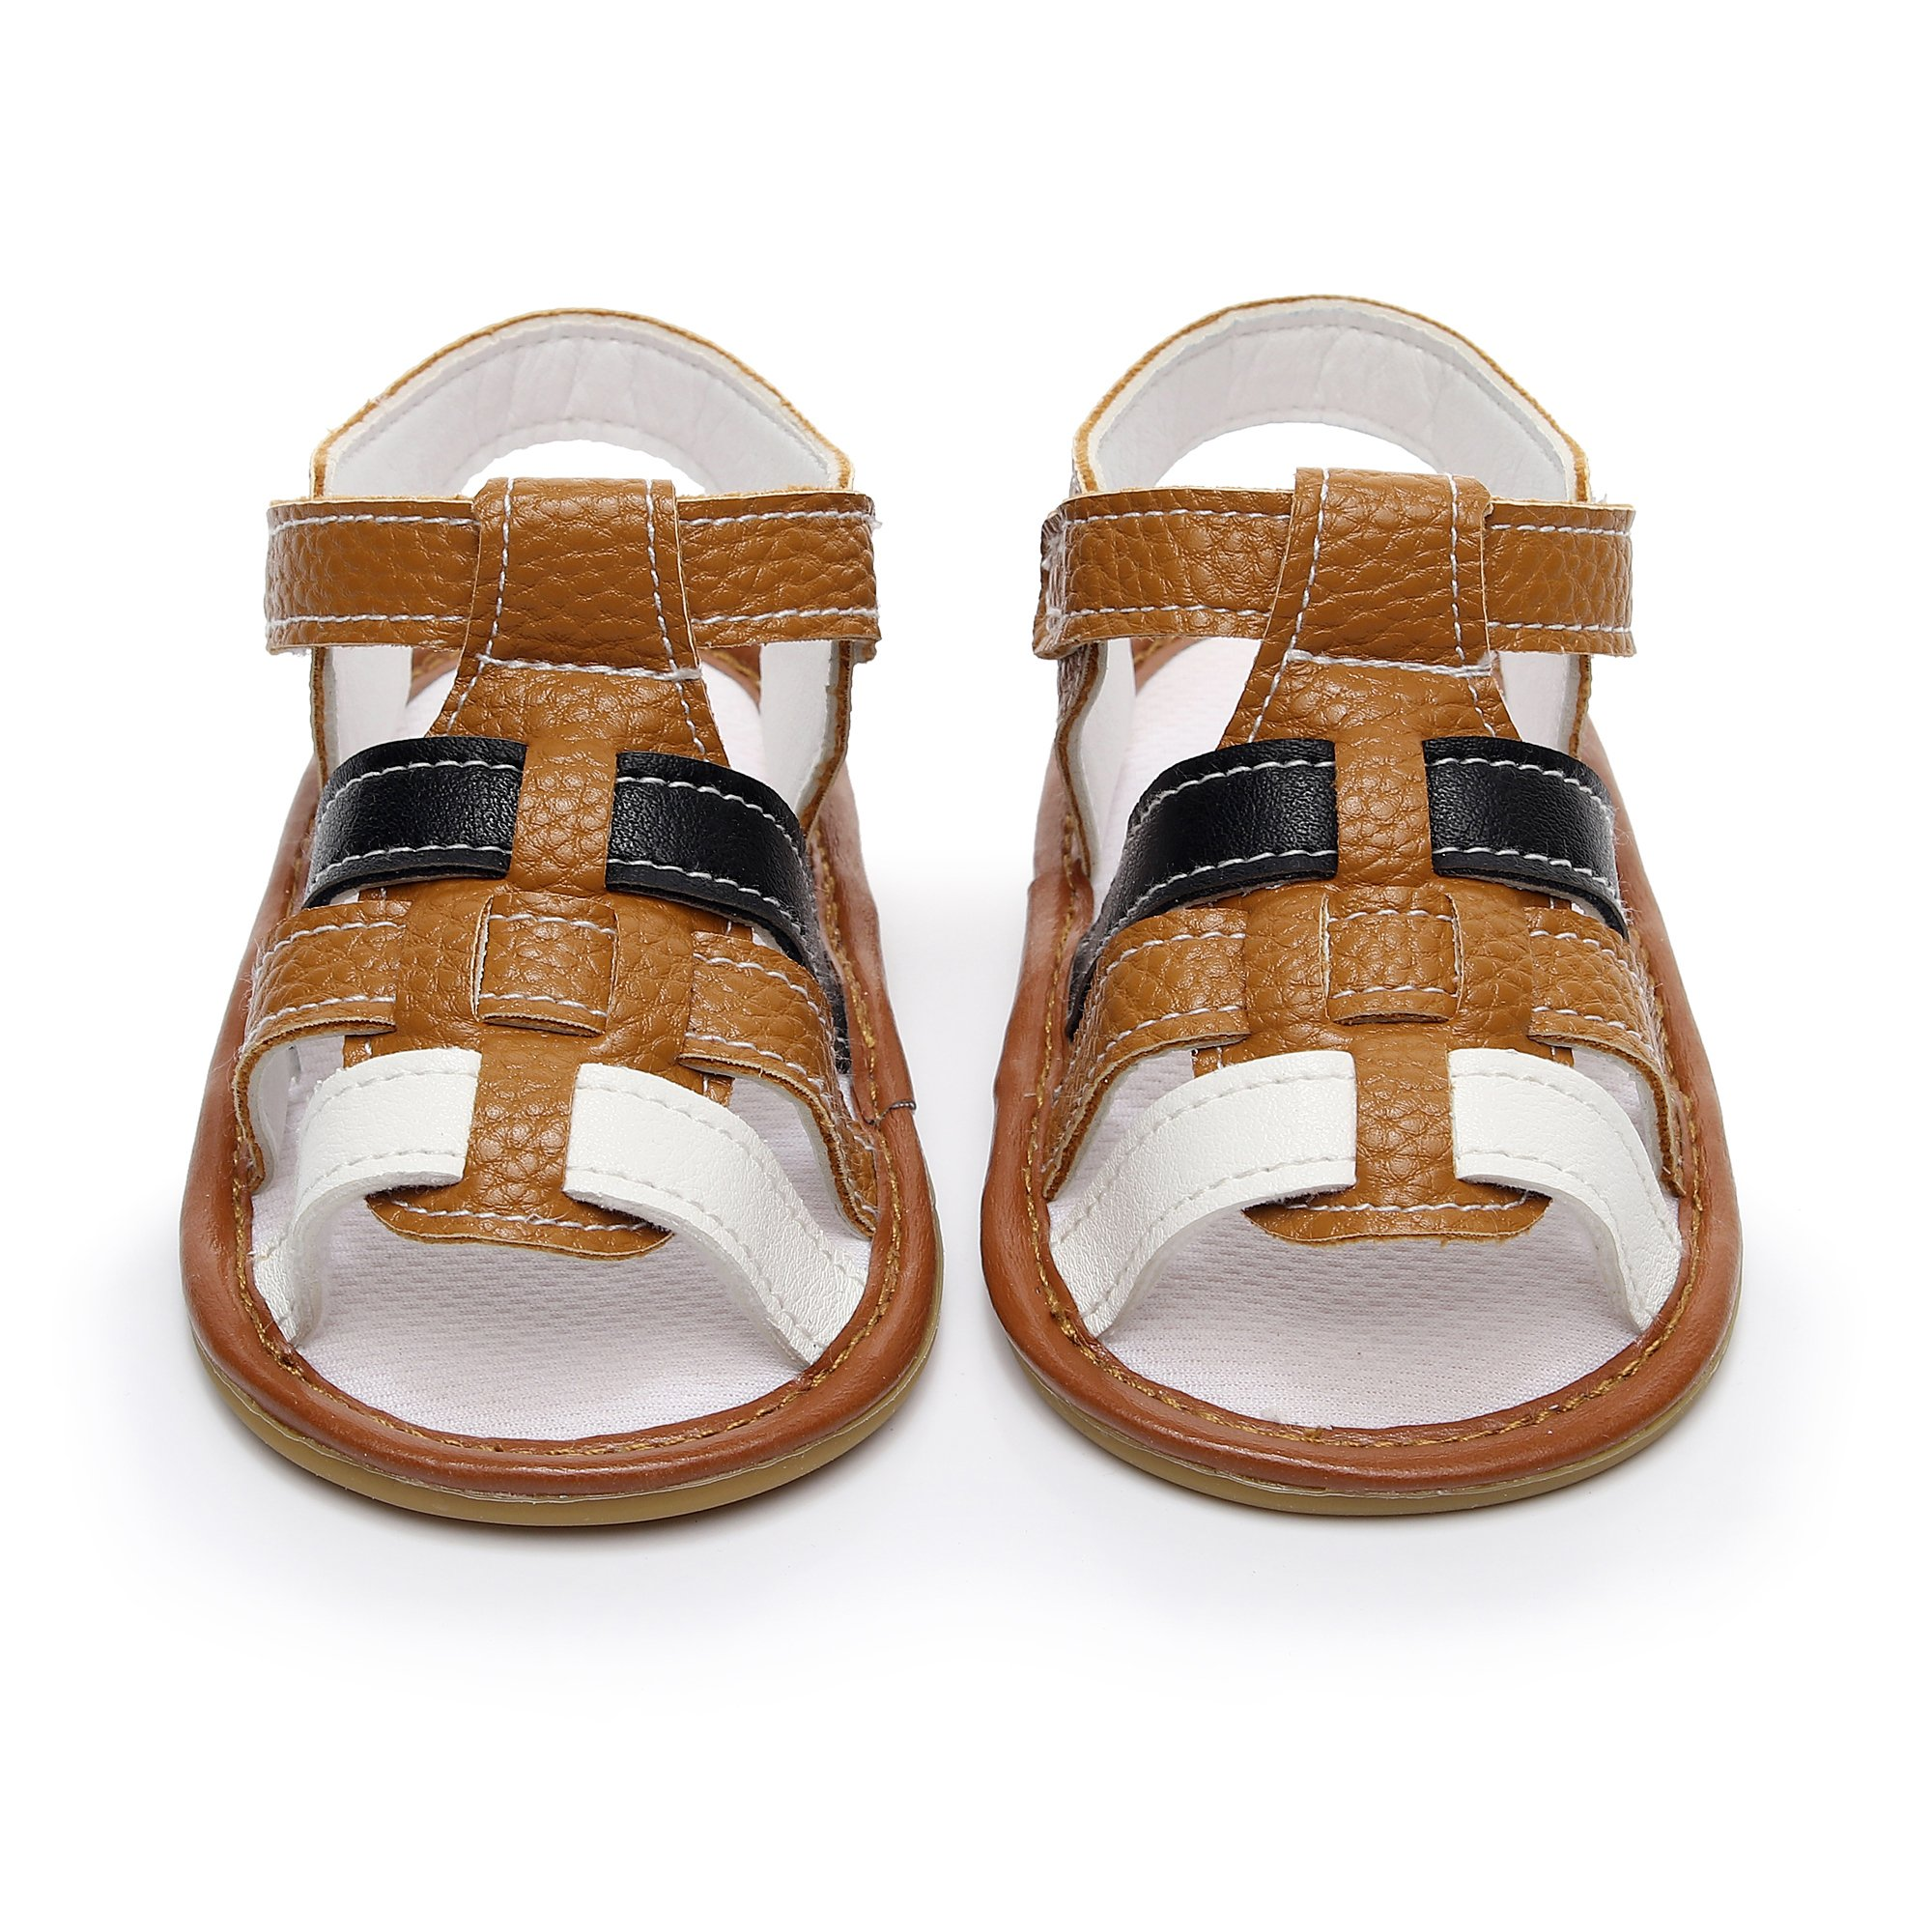 974220134cac HONGTEYA Infant Toddler Summer Girls Boys Sandals PU Leather Baby Sandals  Moccasins Rubber Sole First Walkers Shoes (US7 14cm 5.51